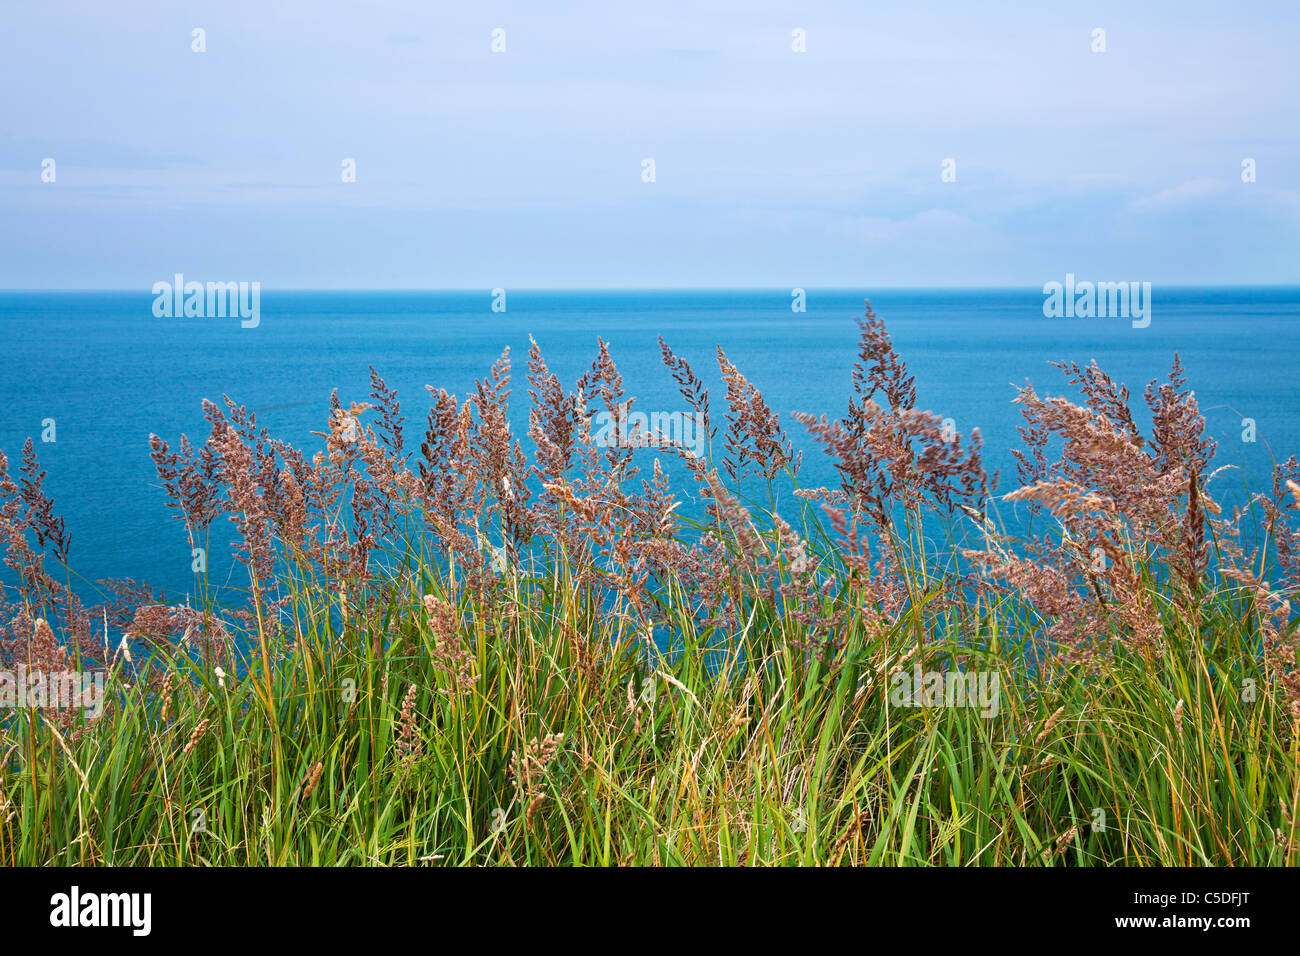 A simple image of coastal grasses with the blue sea and horizon beyond. - Stock Image